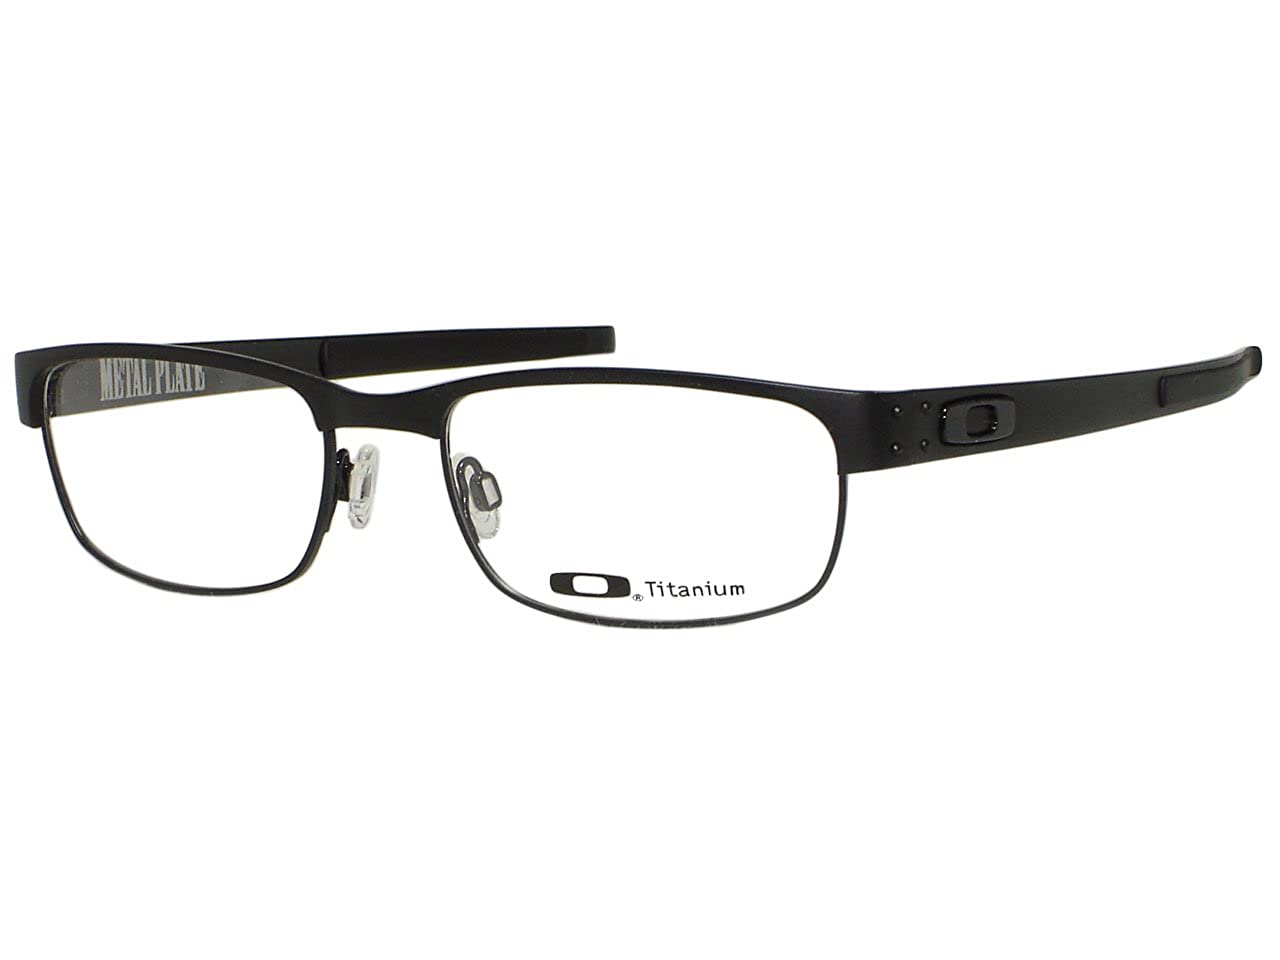 b84fc60c40 Amazon.com  Oakley Metal Plate 22-198 Eyeglasses  Matte Black Color    Clothing